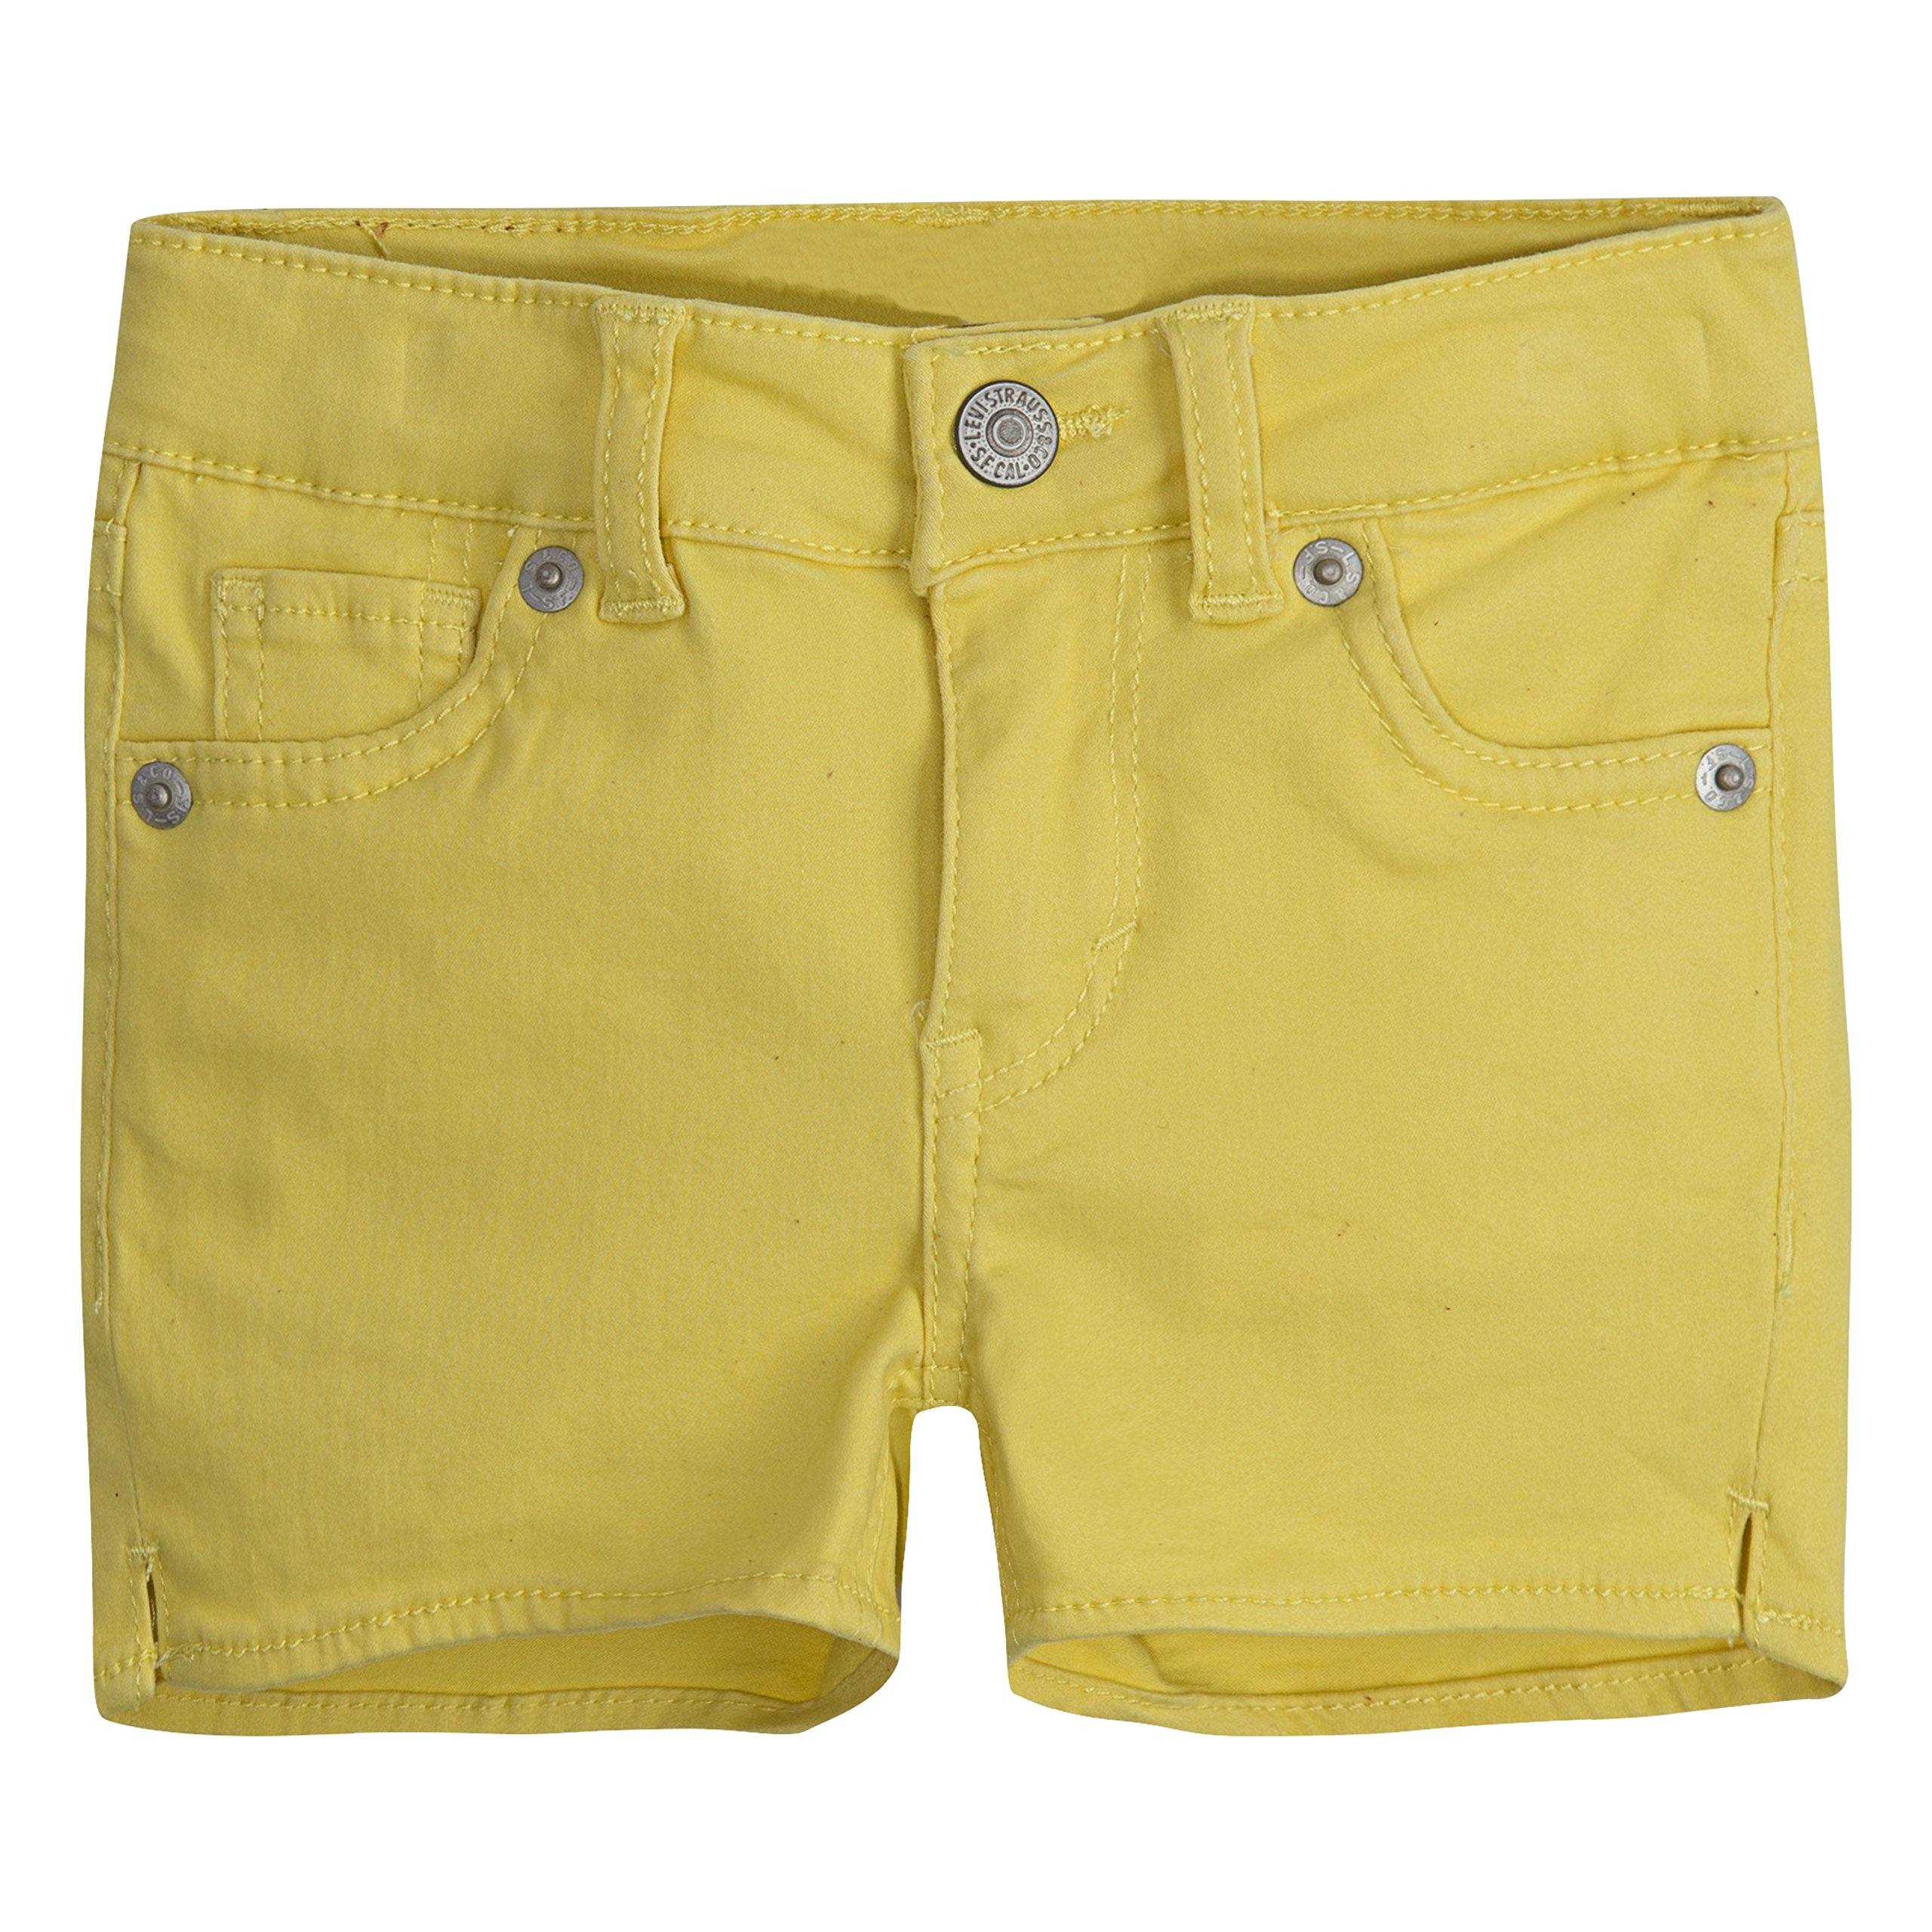 Levi's Girls' Toddler Soft Brushed Shorty Shorts, Yellow Cream, 2T